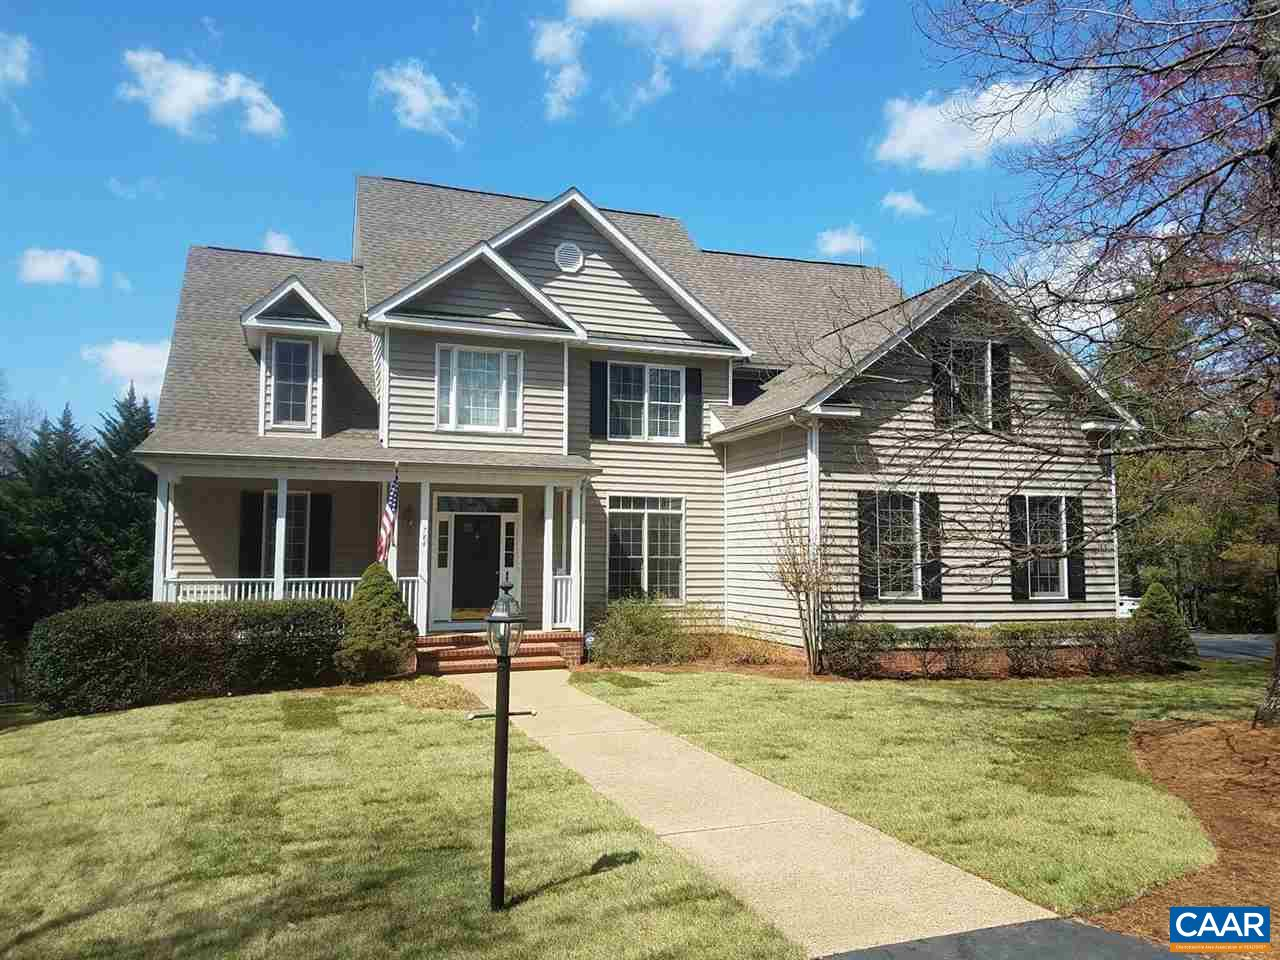 home for sale , MLS #573855, 784 Earlysville Forest Dr